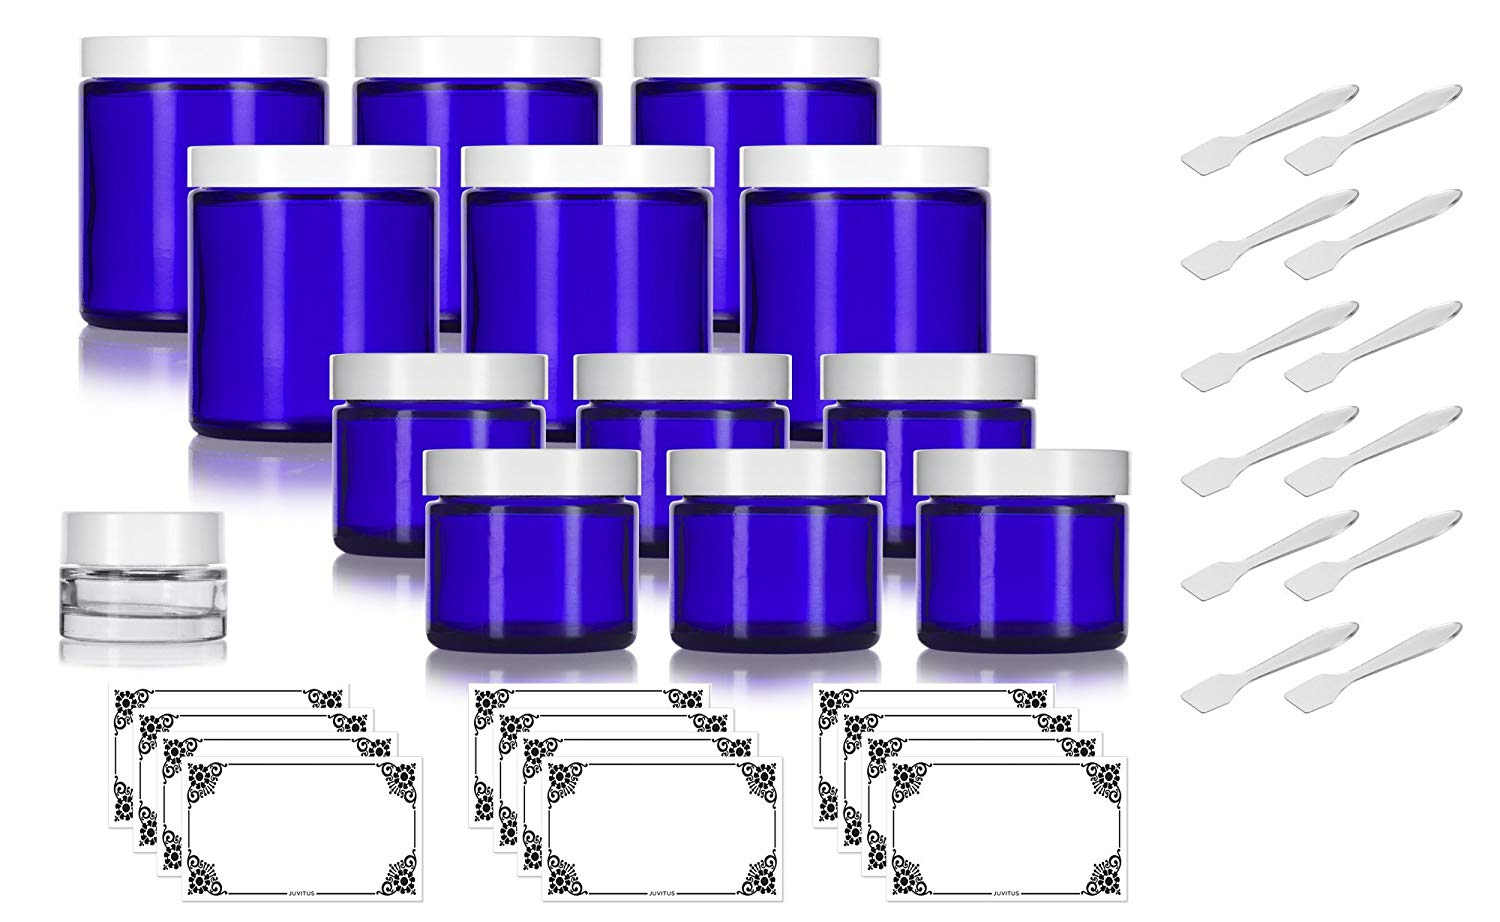 12 piece Cobalt Blue Glass Straight Sided Jar Starter Kit Set: 6 - 2 oz Cobalt Glass Jars, 6 - 4 oz Cobalt Glass Jars With White Lids + a Small Glass Balm Jar and Labels